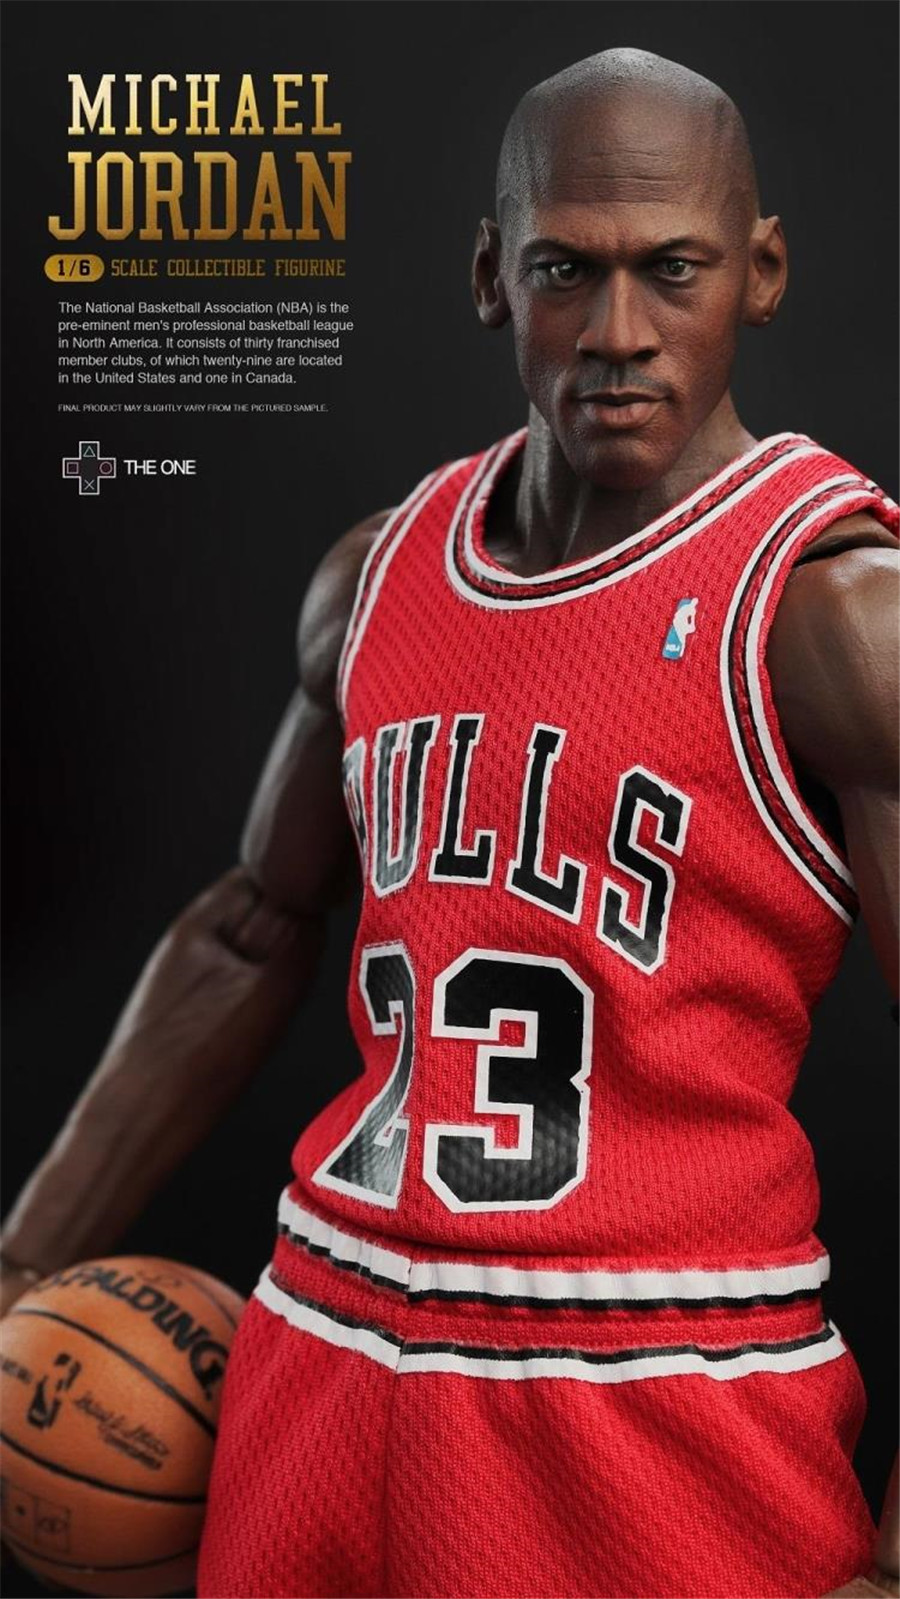 68e55a2f847521 The One 1 6 NBA superstar Air Jordan Michael Jordan hot action figure toys